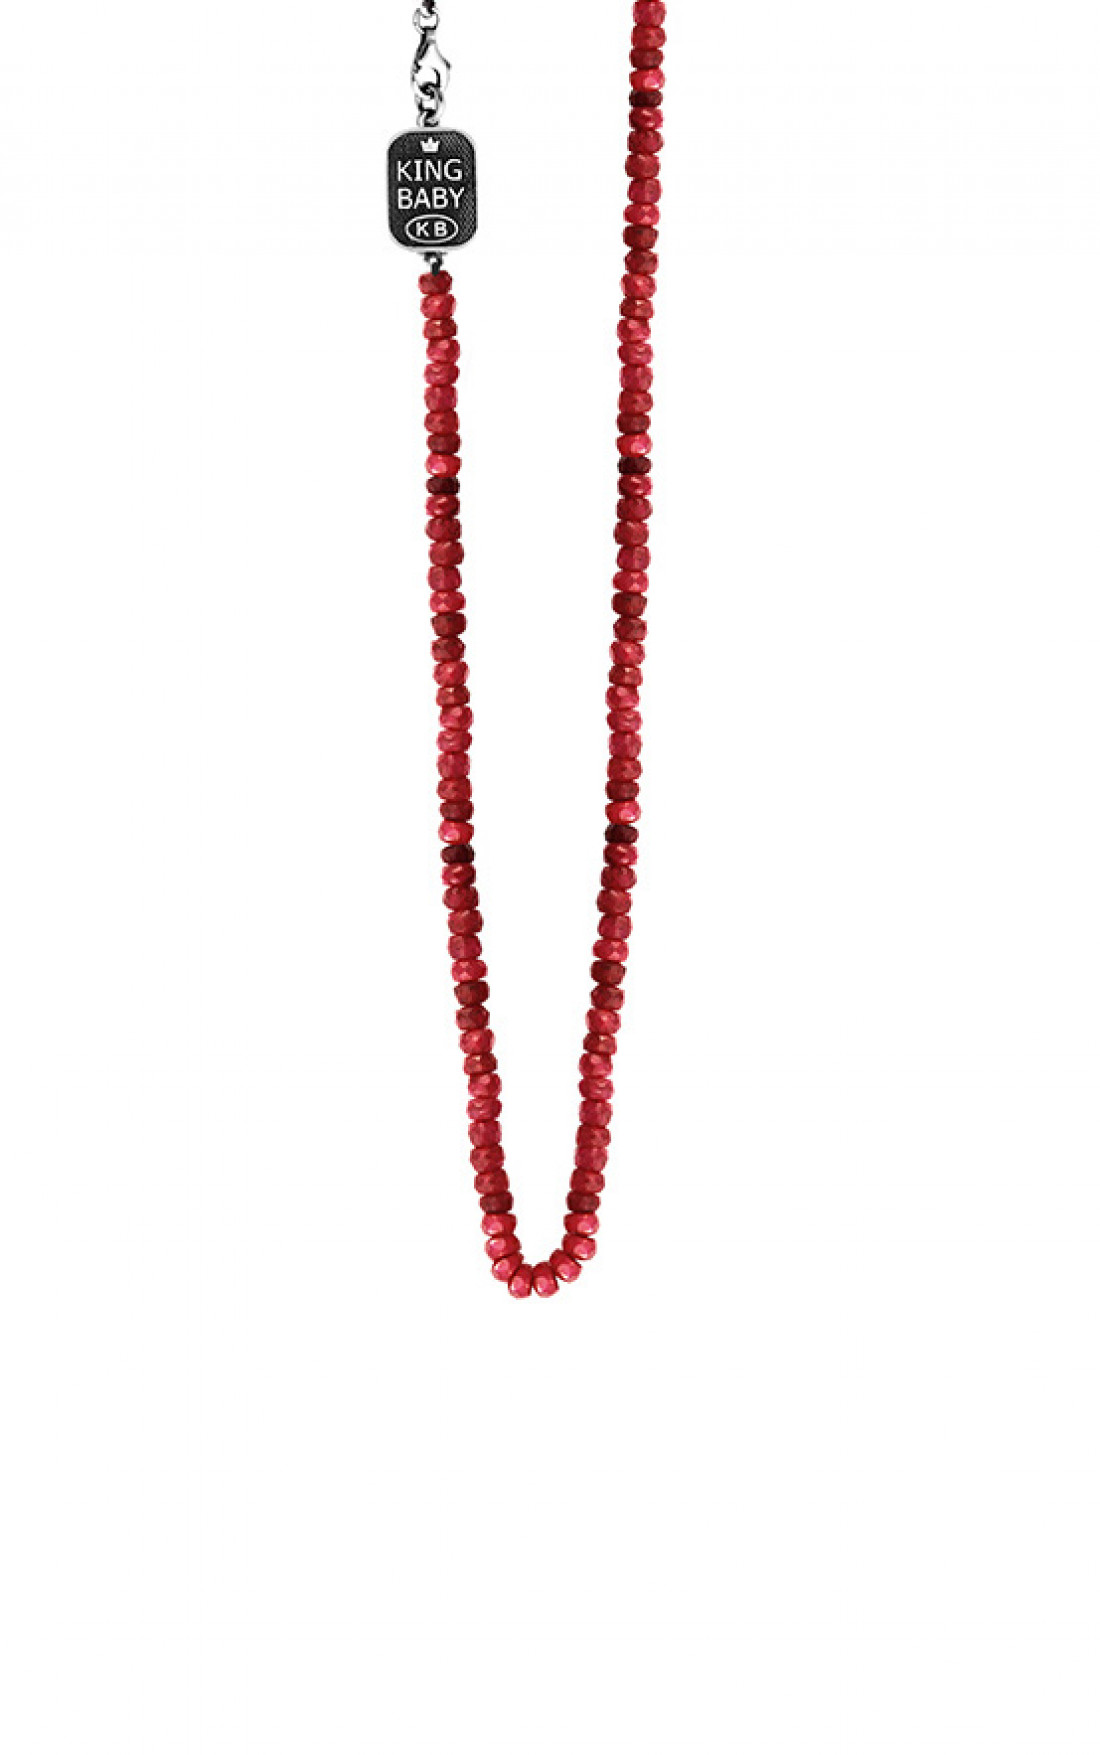 King Baby - Ruby Bead Necklace (K51-5100)